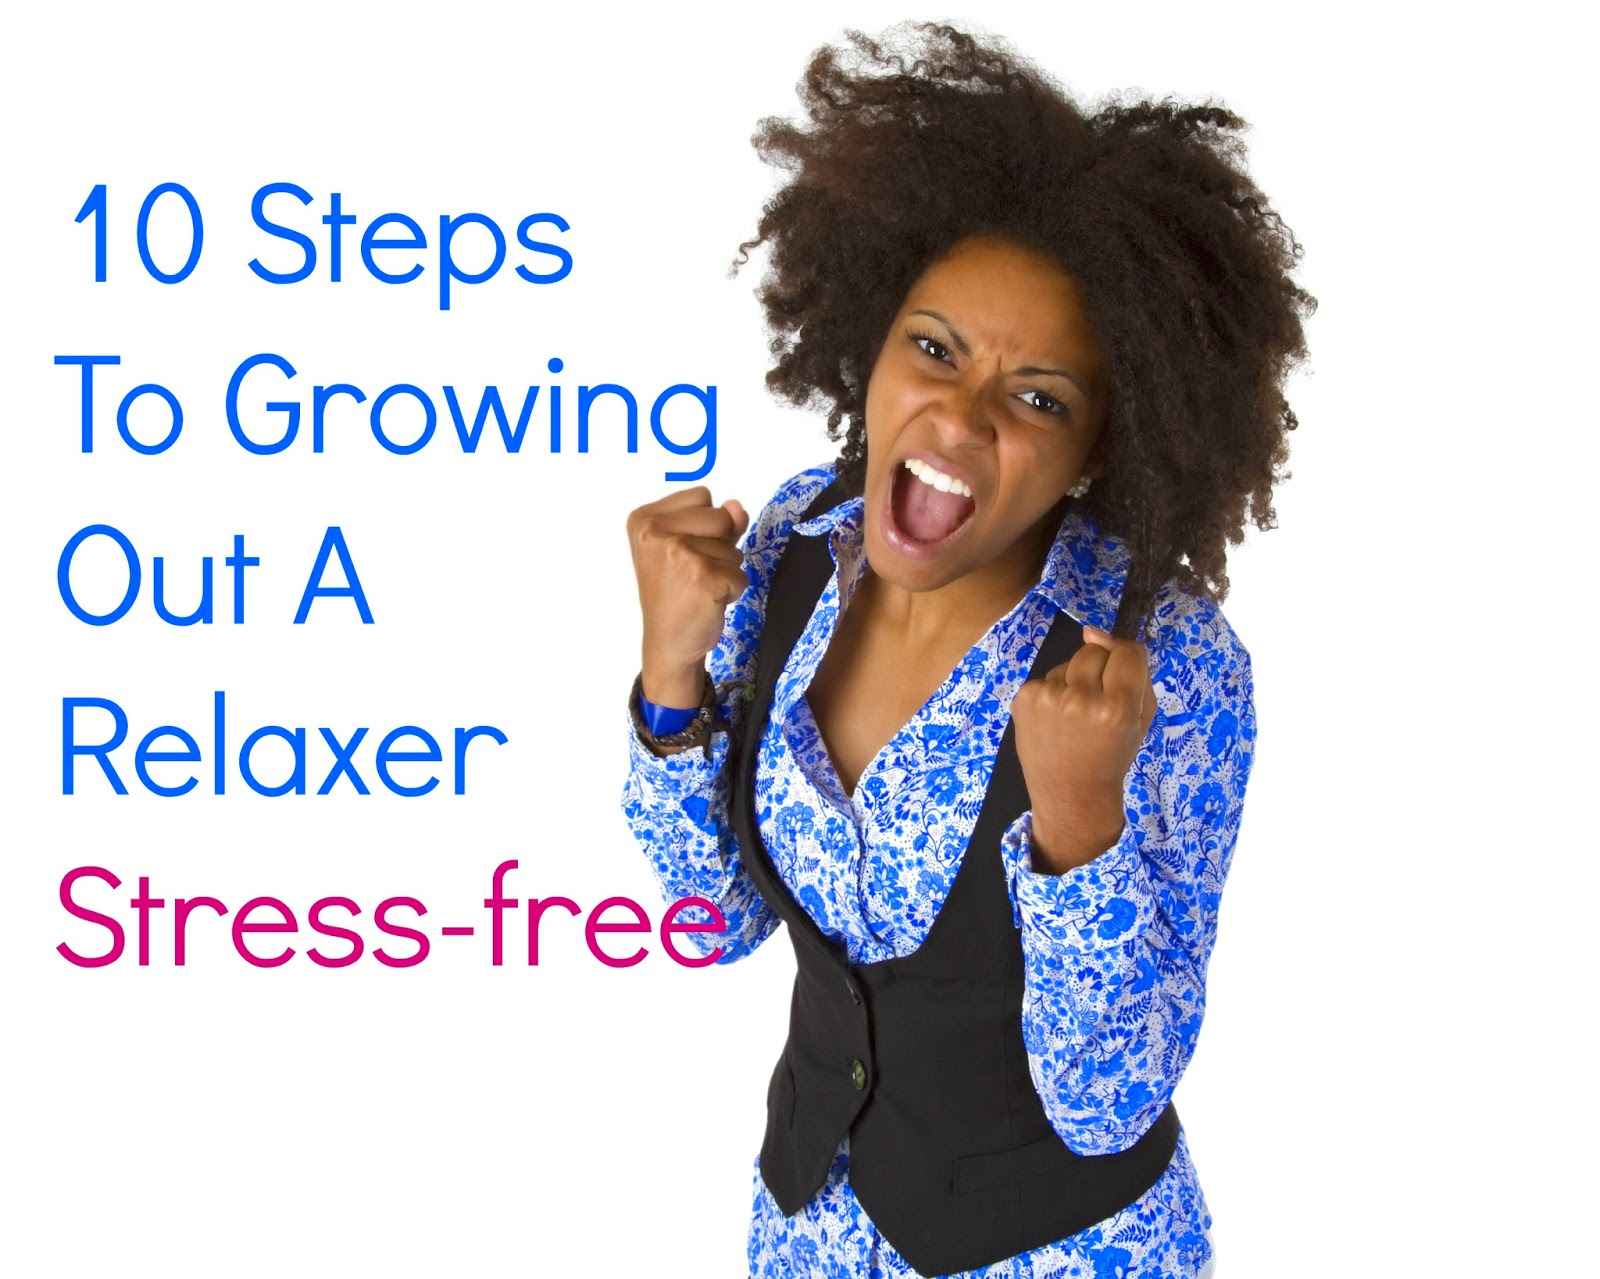 10 Steps To Growing Out A Relaxer Stress-free (www.seriouslynatural.org)